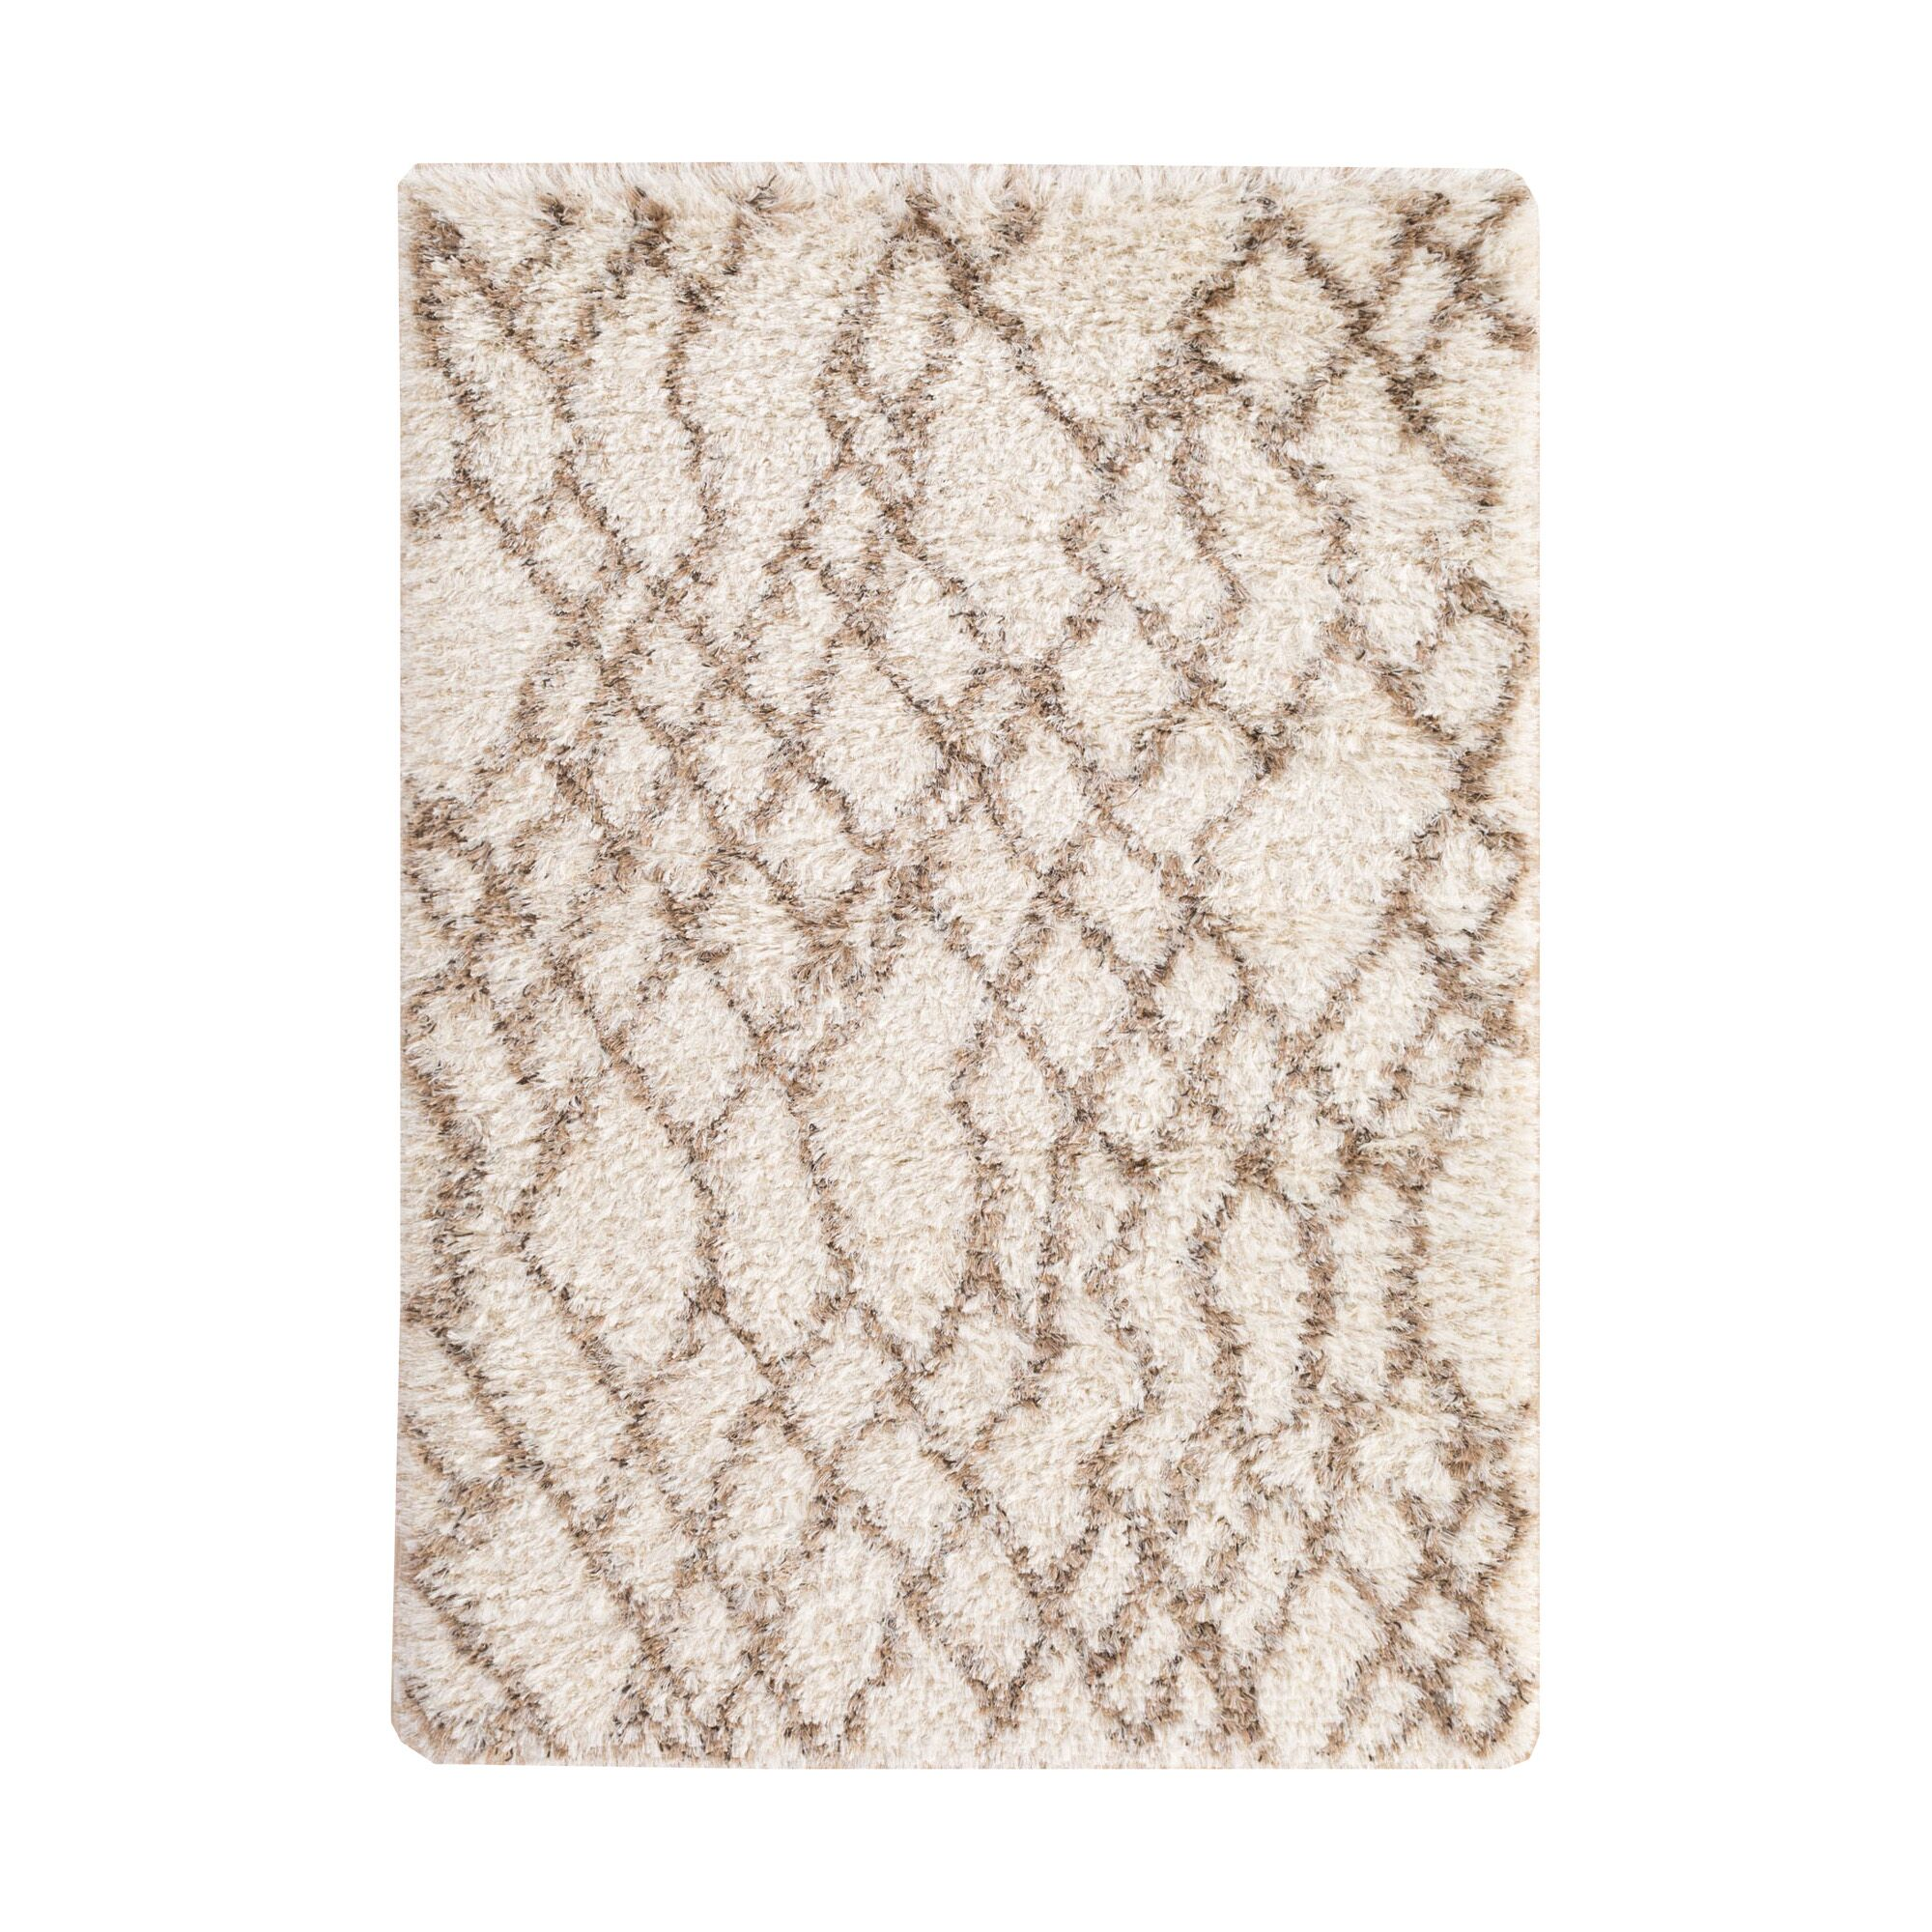 Camberry Hand-Woven Beige & Brown Area Rug Rug Size: Rectangle 2' x 3'